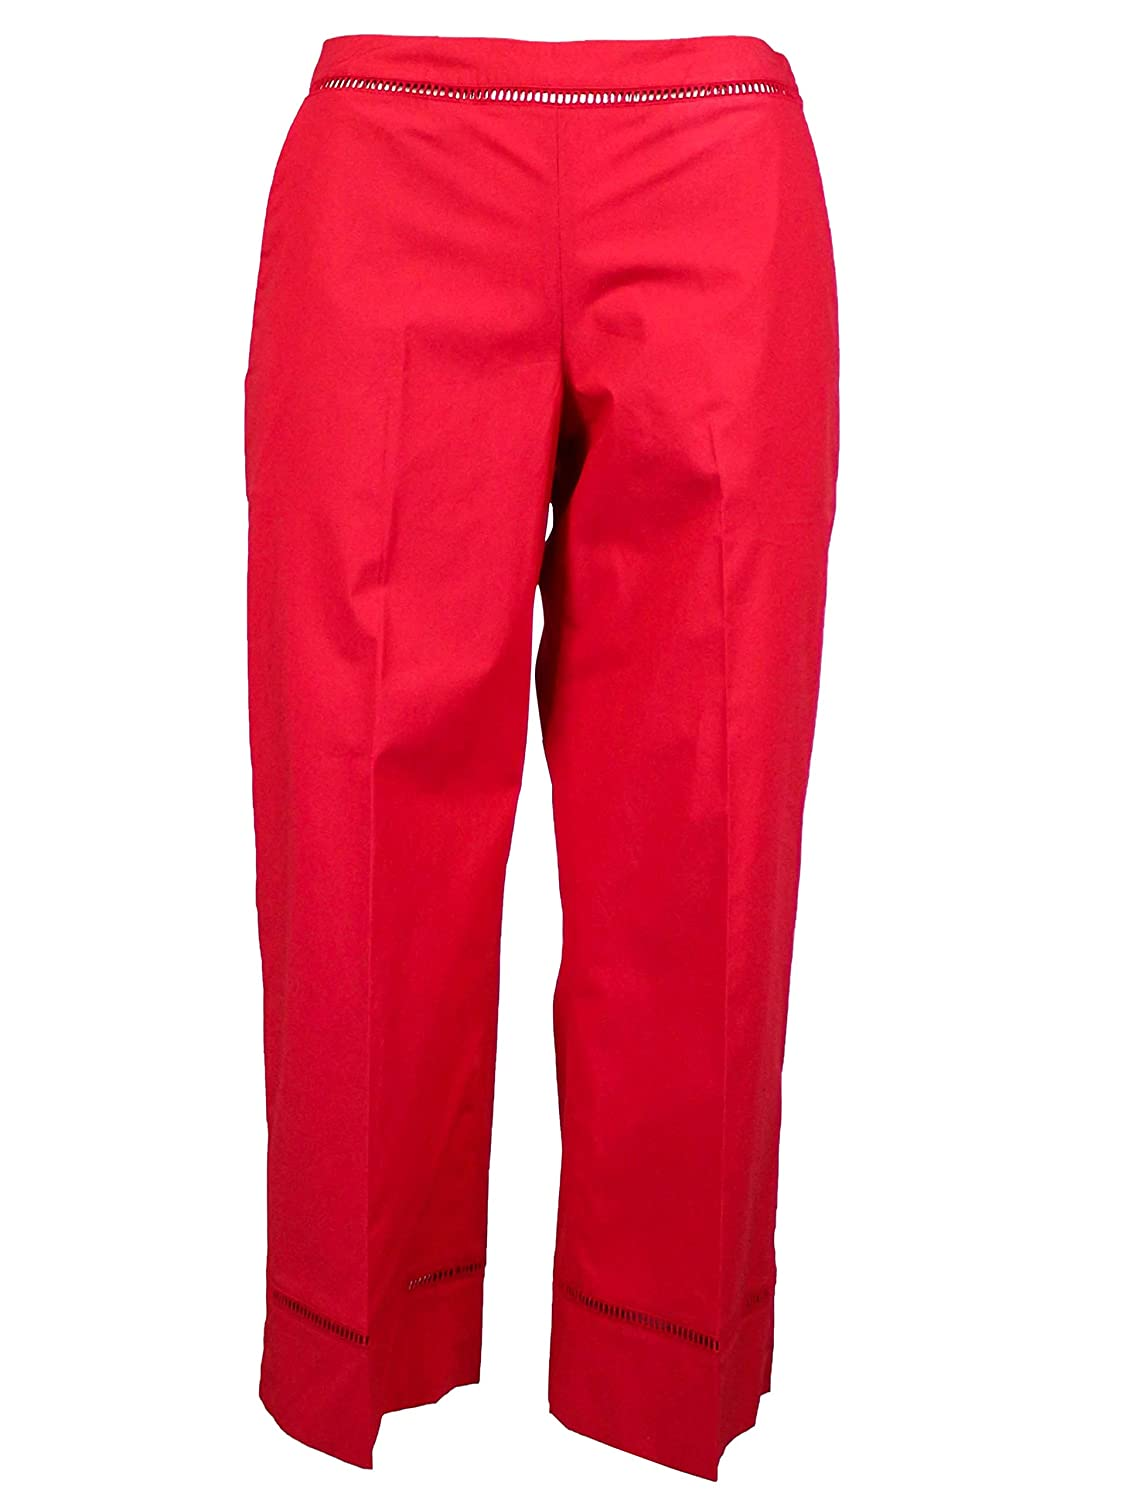 TwinSet Women's 191TT224403725 Red Cotton Pants